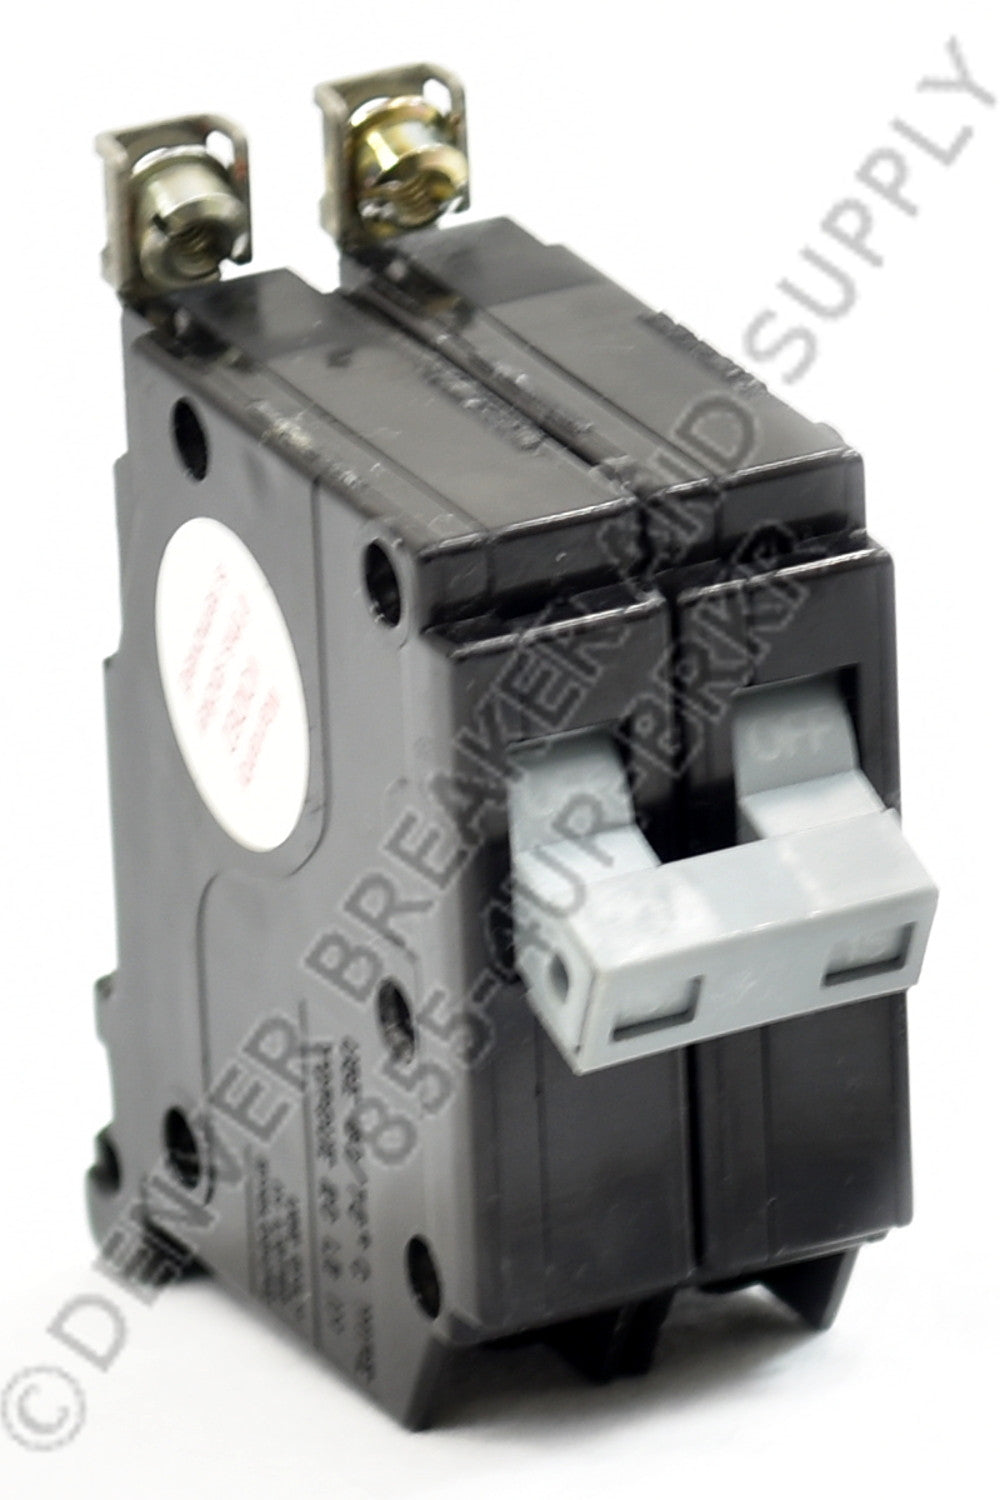 Cutler Hammer CHB240ST Circuit Breakers